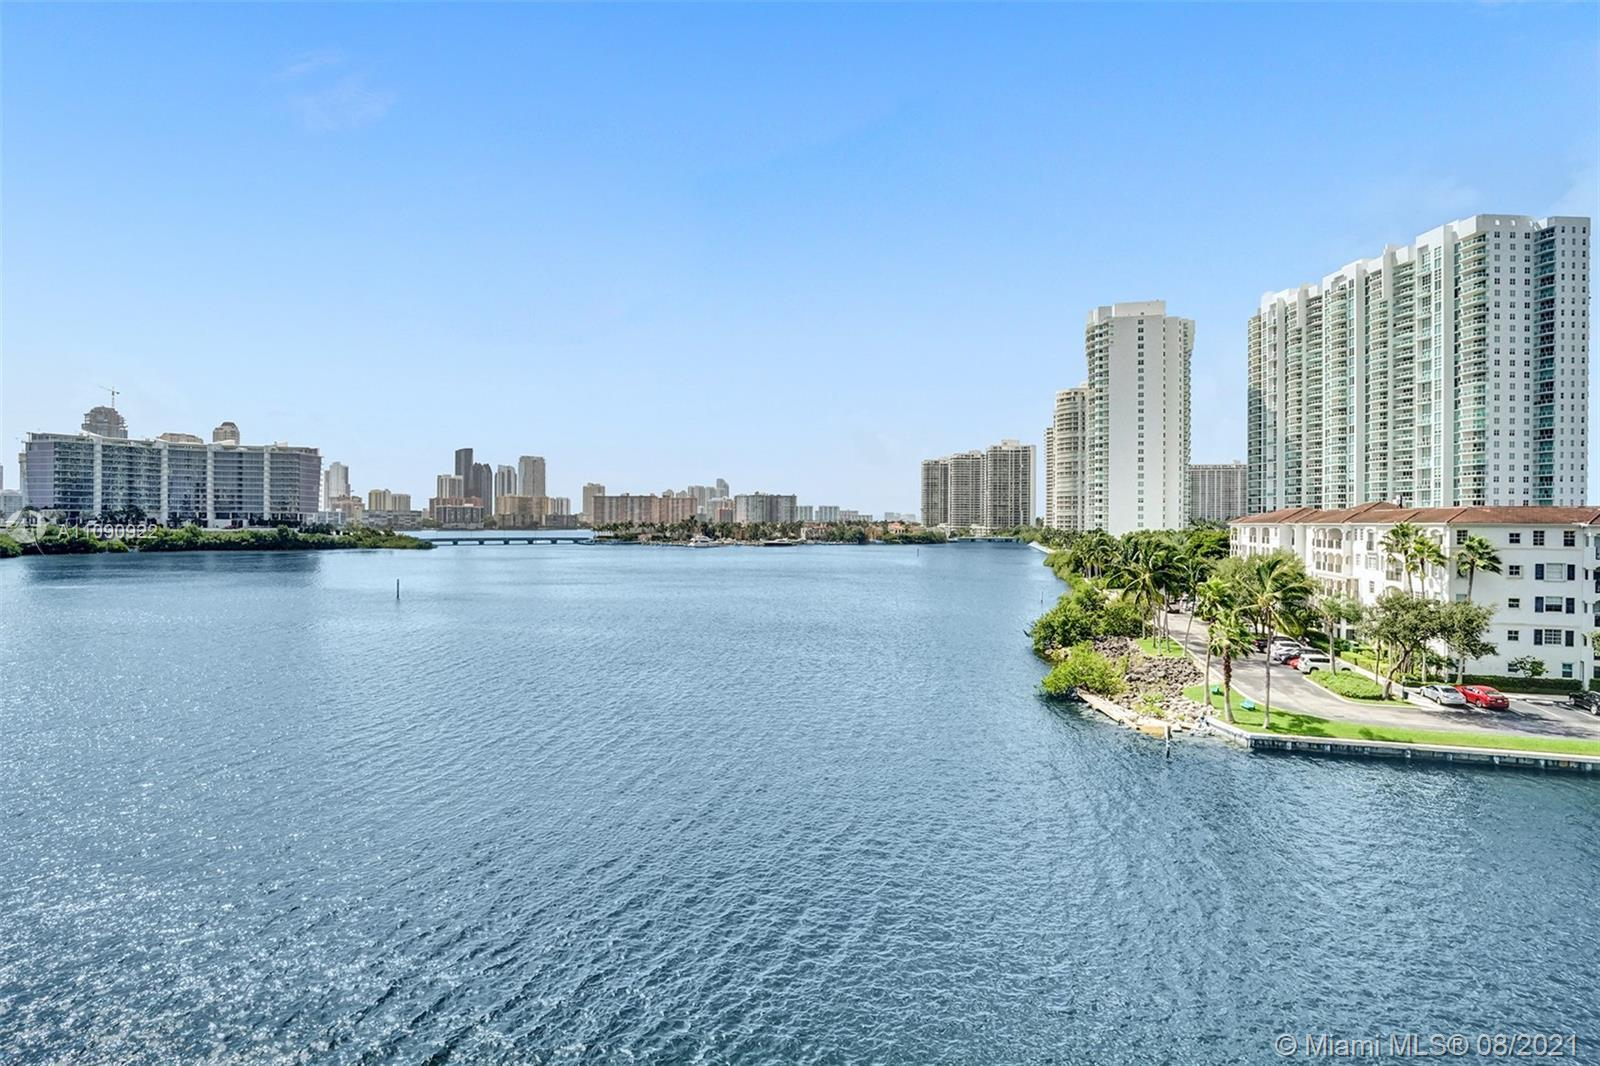 Spectacular 4BD/4.5BA unit at Echo Aventura. Highlights of this flow-thru residence are private elev